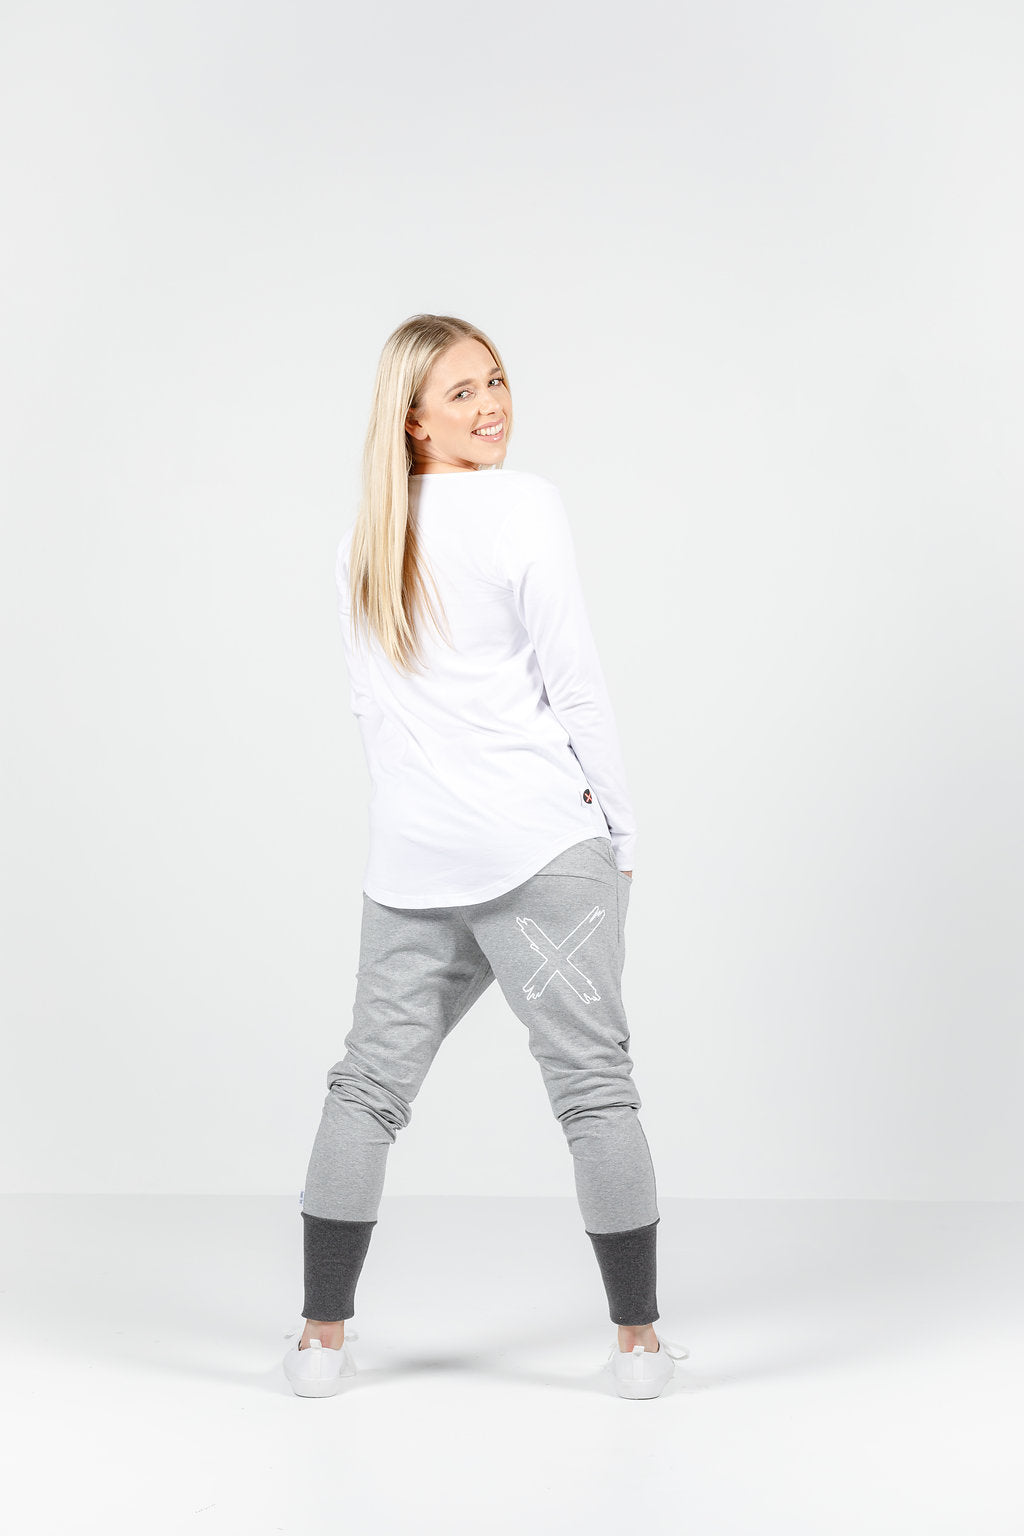 APARTMENT PANTS - WINTER - Grey with charcoal cuffs and X outline